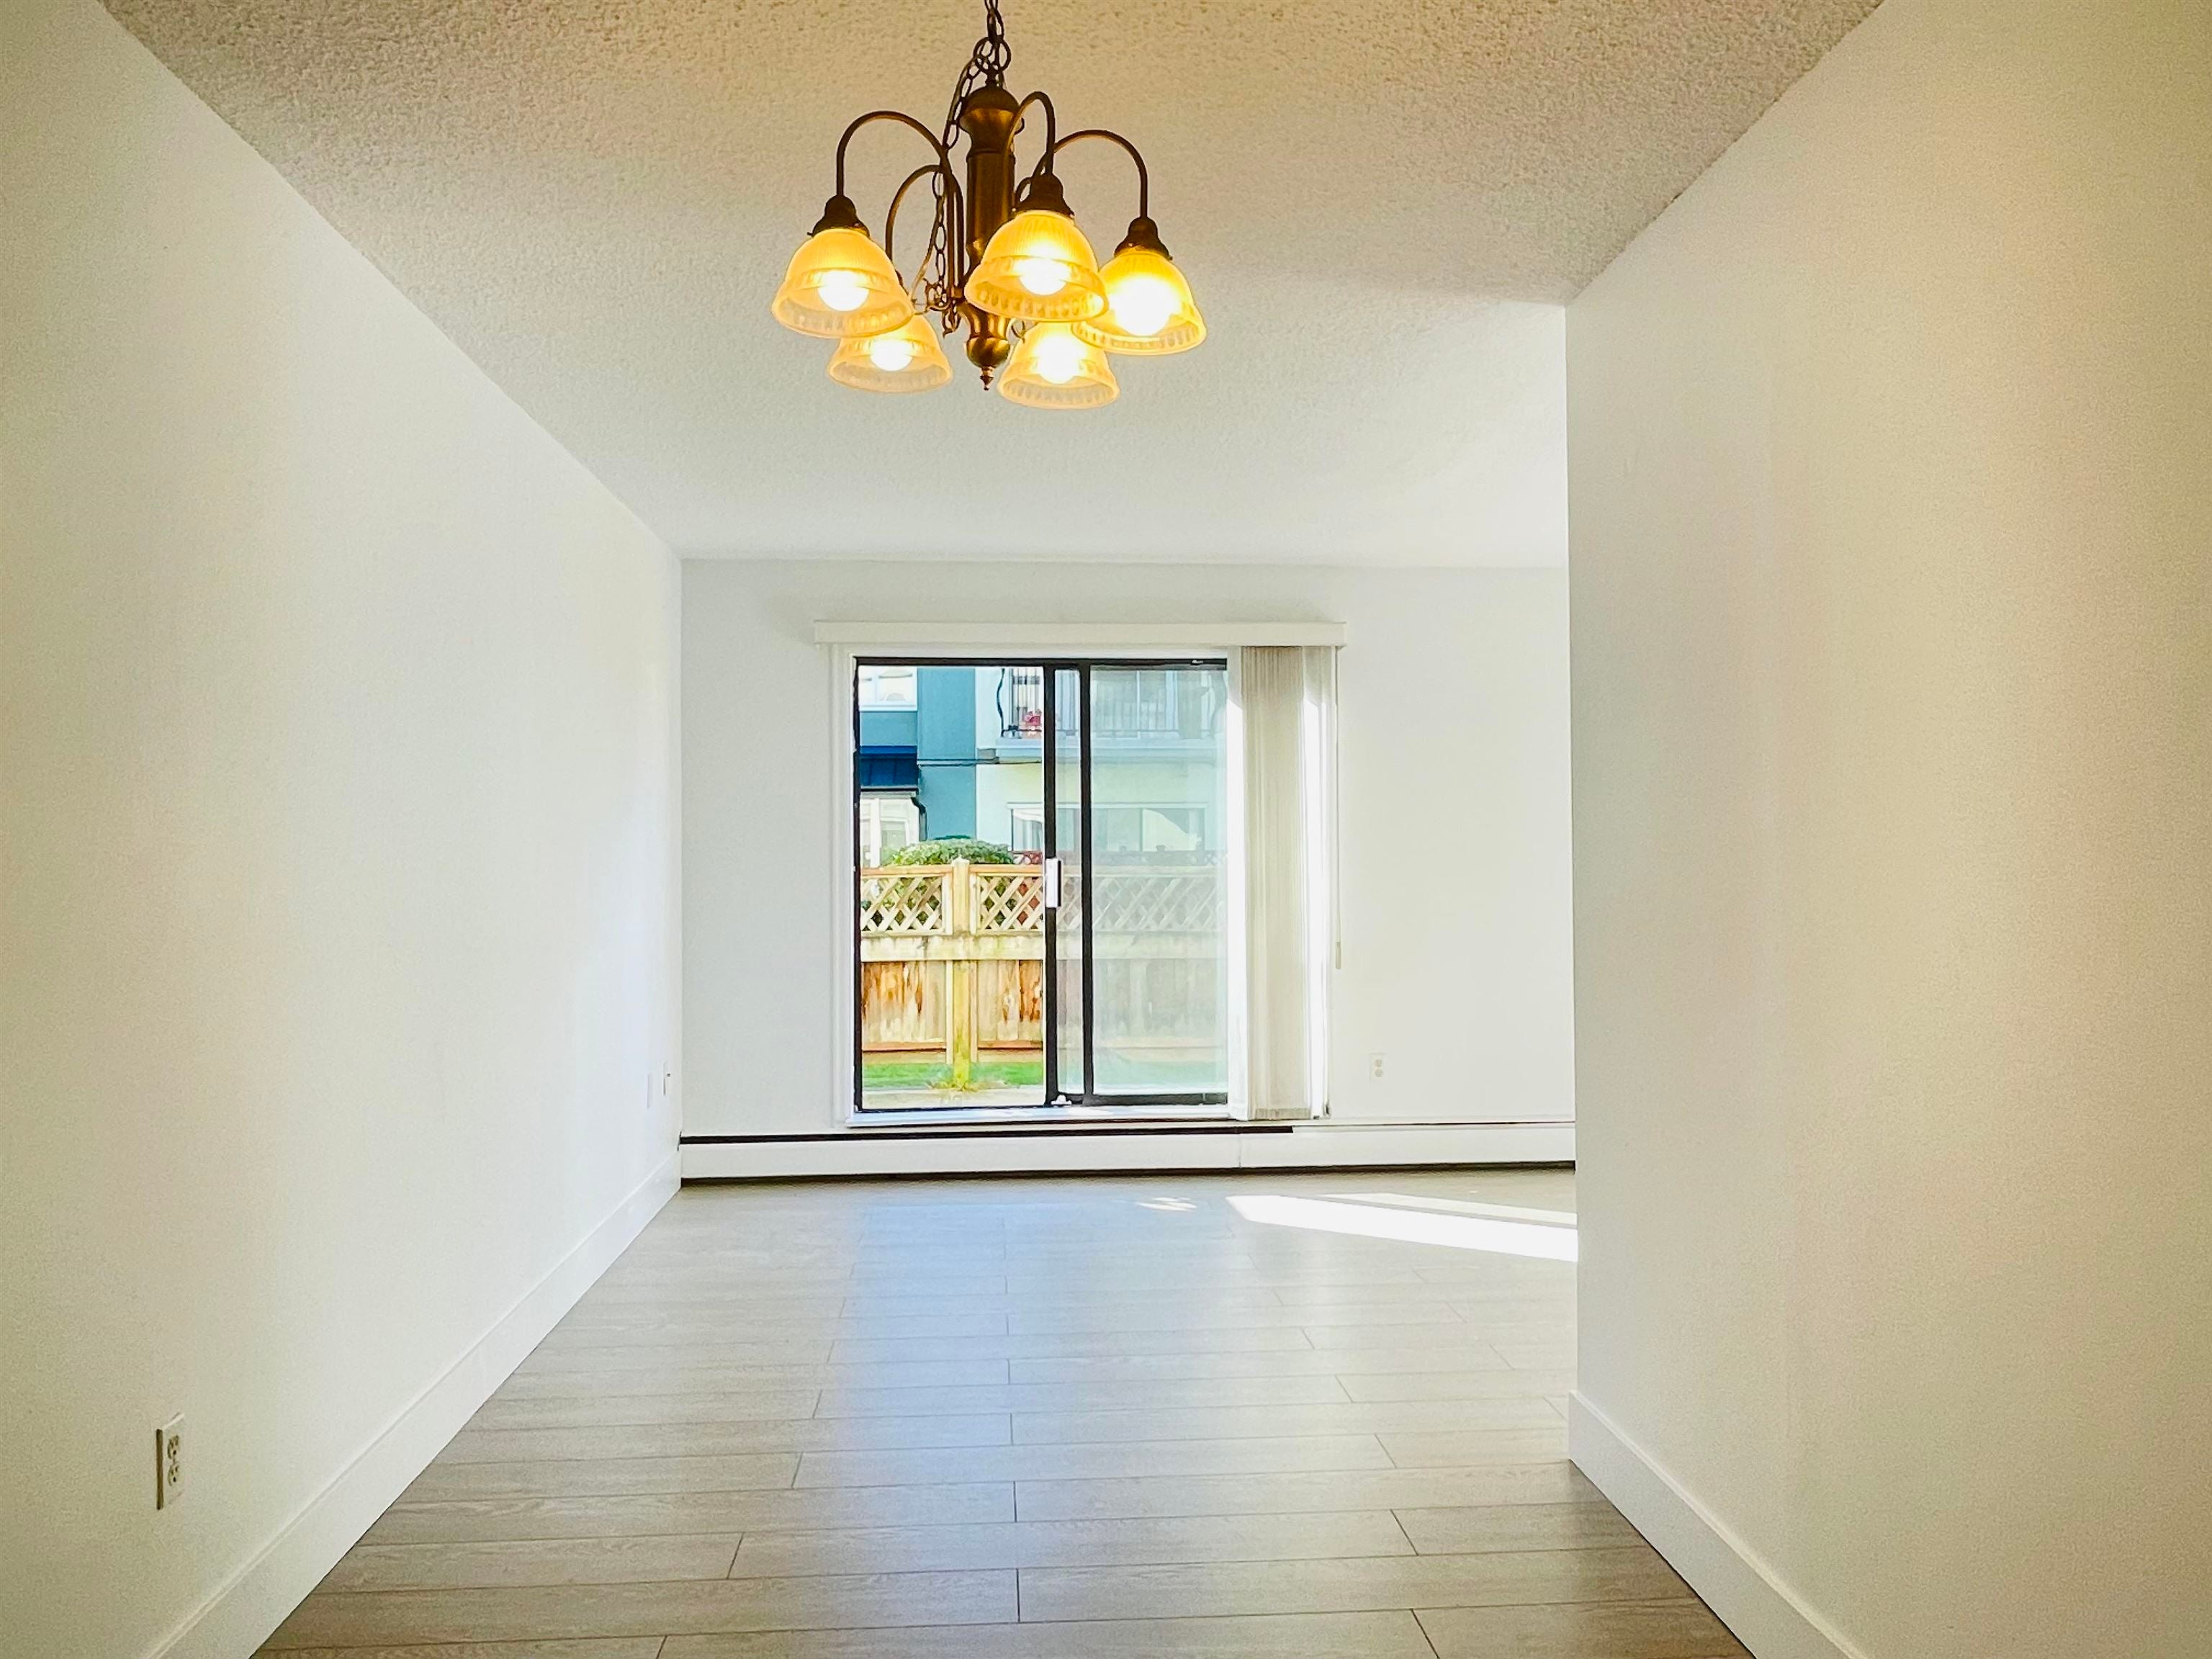 8011 RYAN ROAD - South Arm Apartment/Condo for sale, 2 Bedrooms (R2628555) - #1